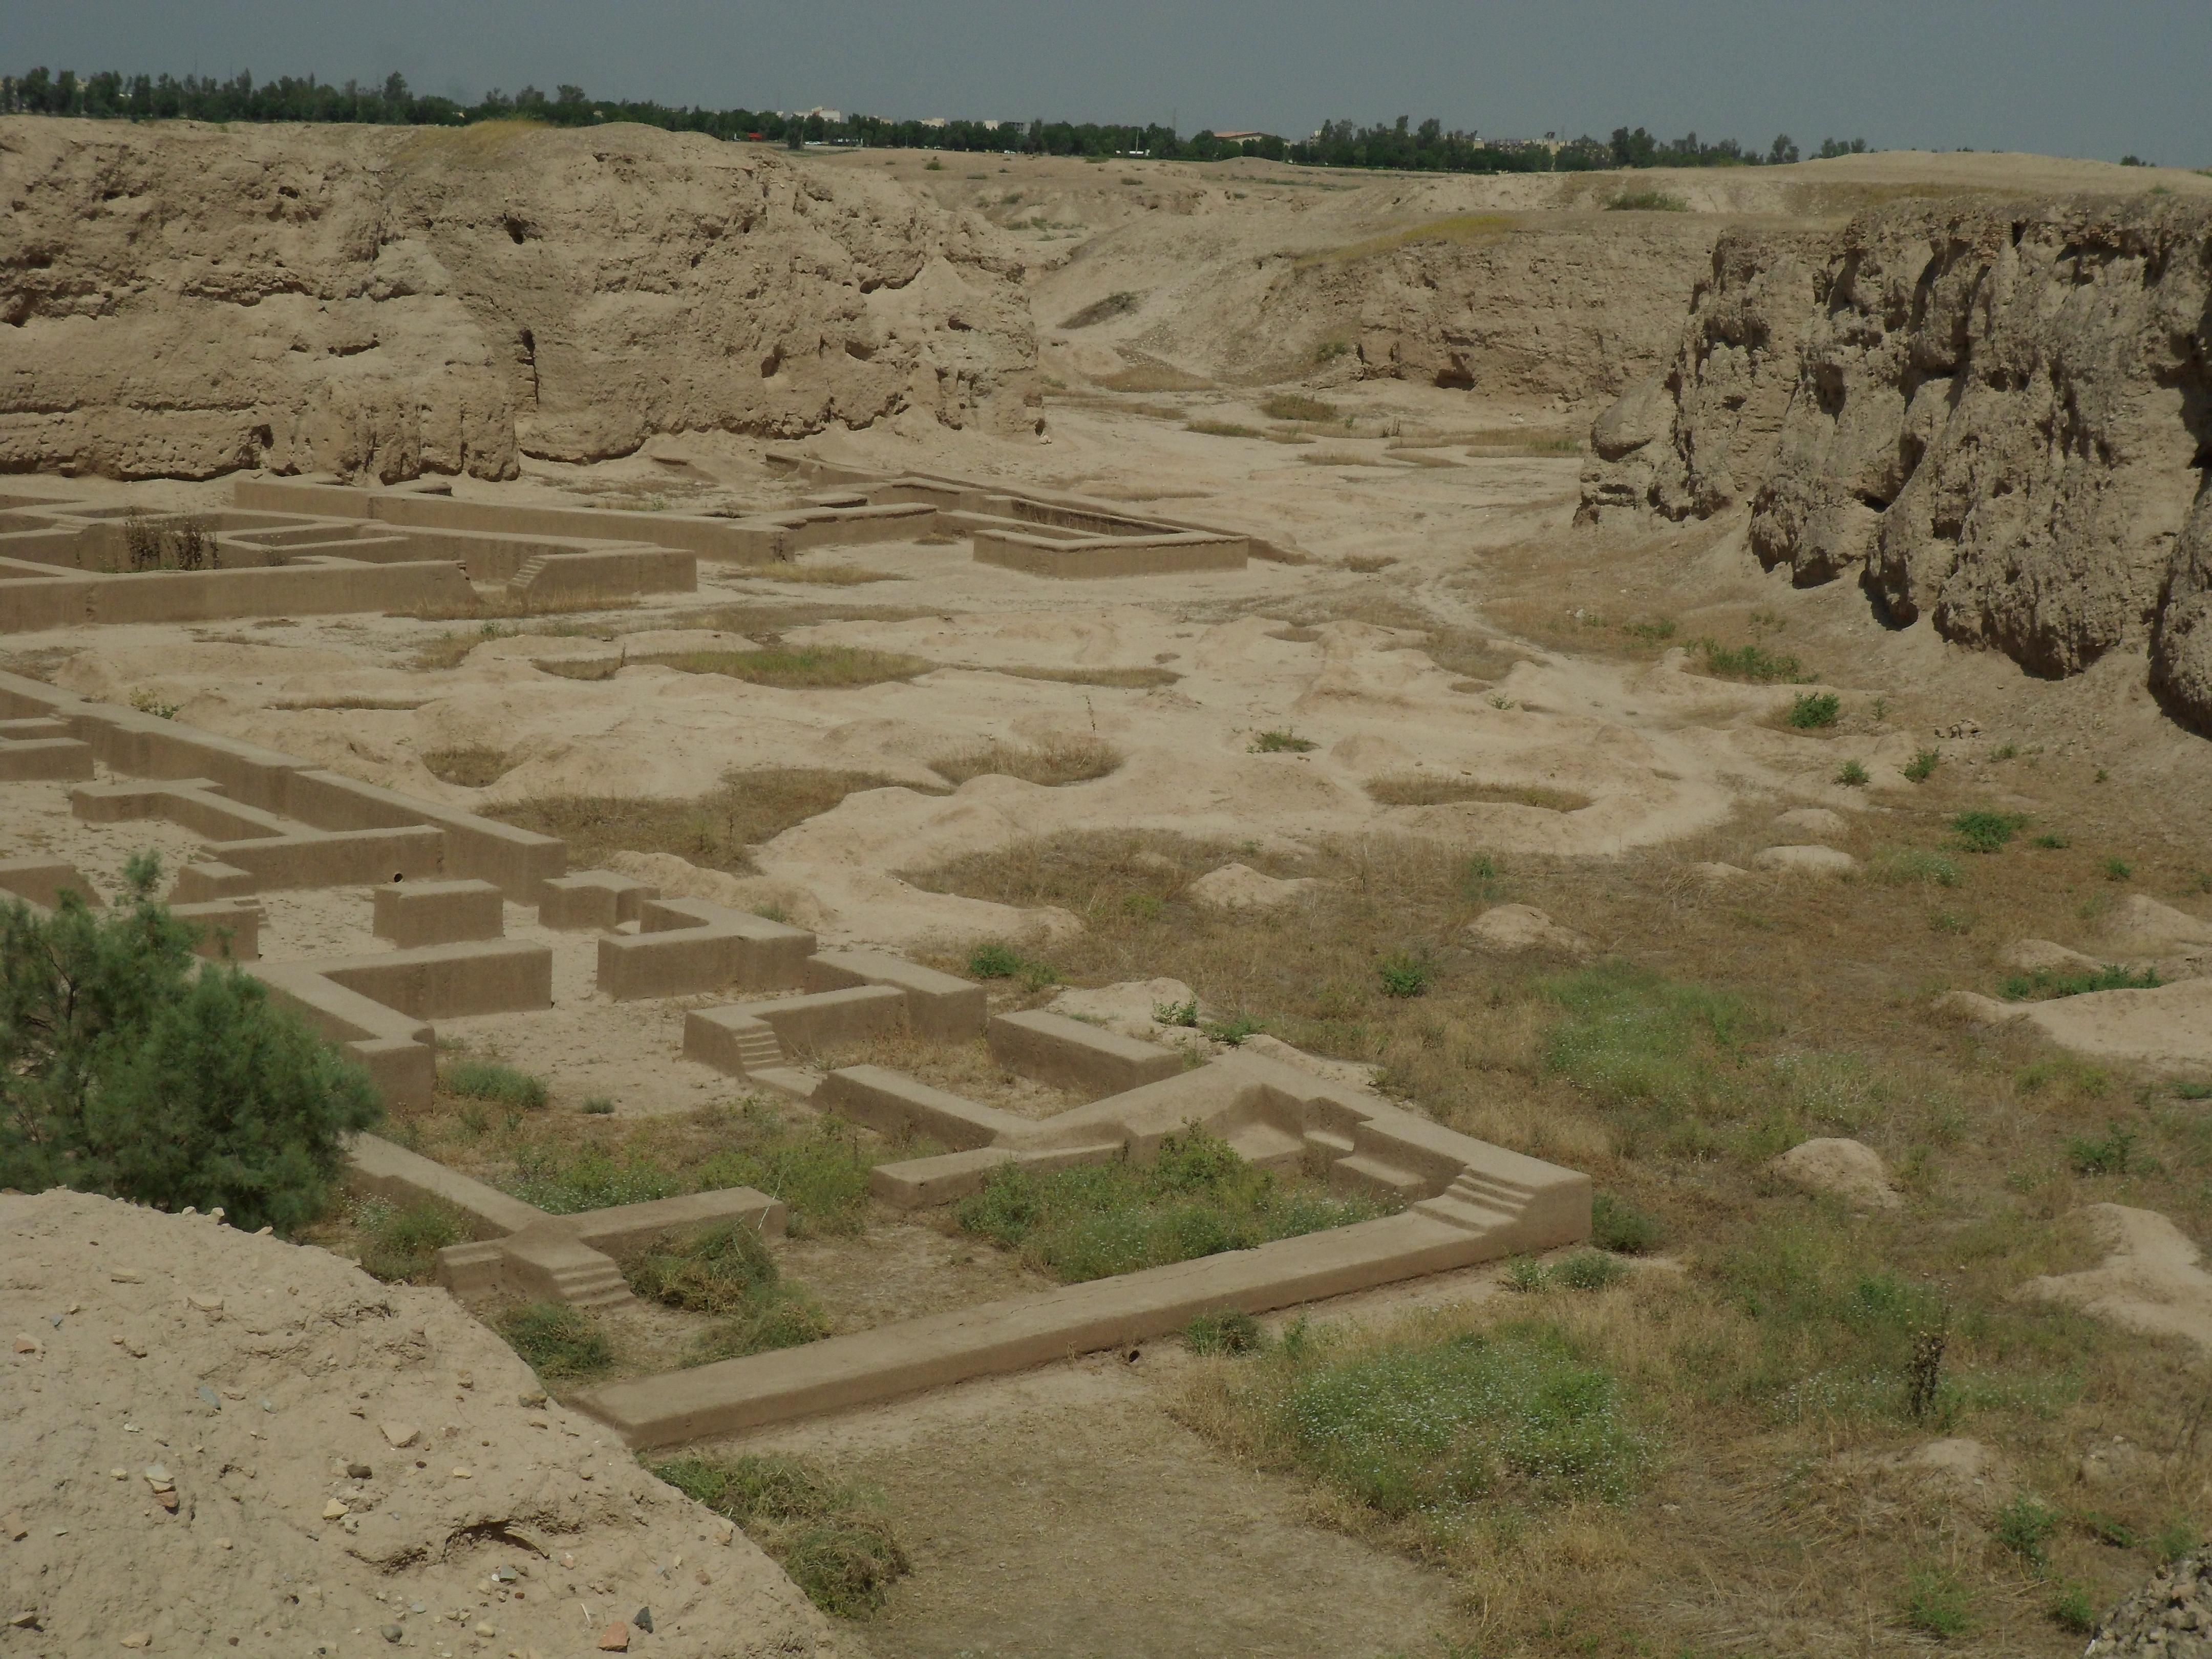 A gigantic excavation 6 or 8 metres deep with the foundations of mud-brick buildings at the bottom